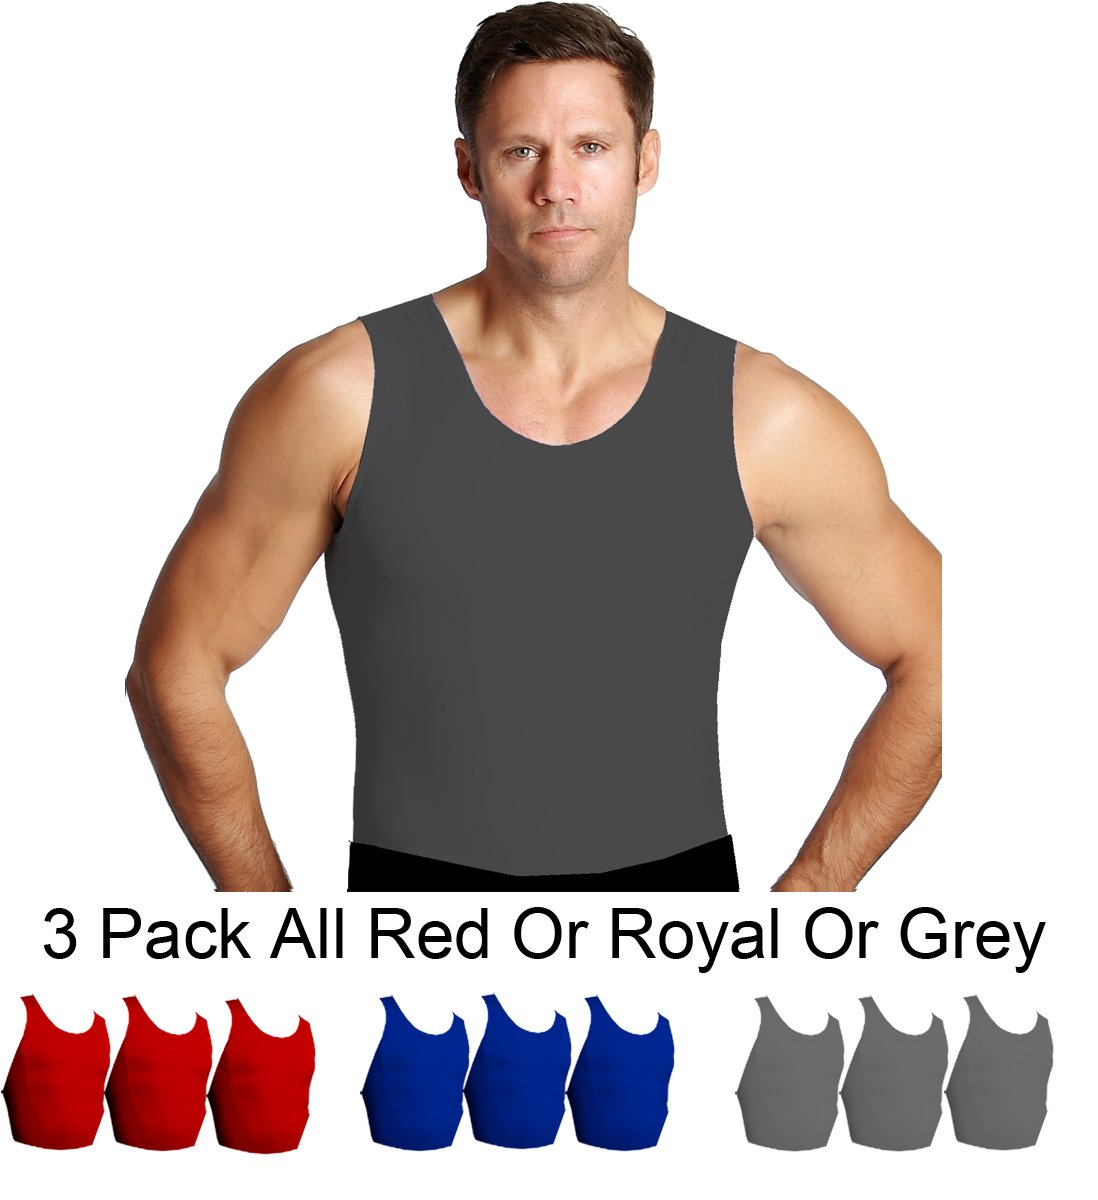 Insta Slim 3 Pack Muscle Tank, Look up to 5 inches Slimmer Instantly, Grey, Medium, The Magic is in The Fabric! by Insta Slim (Image #4)